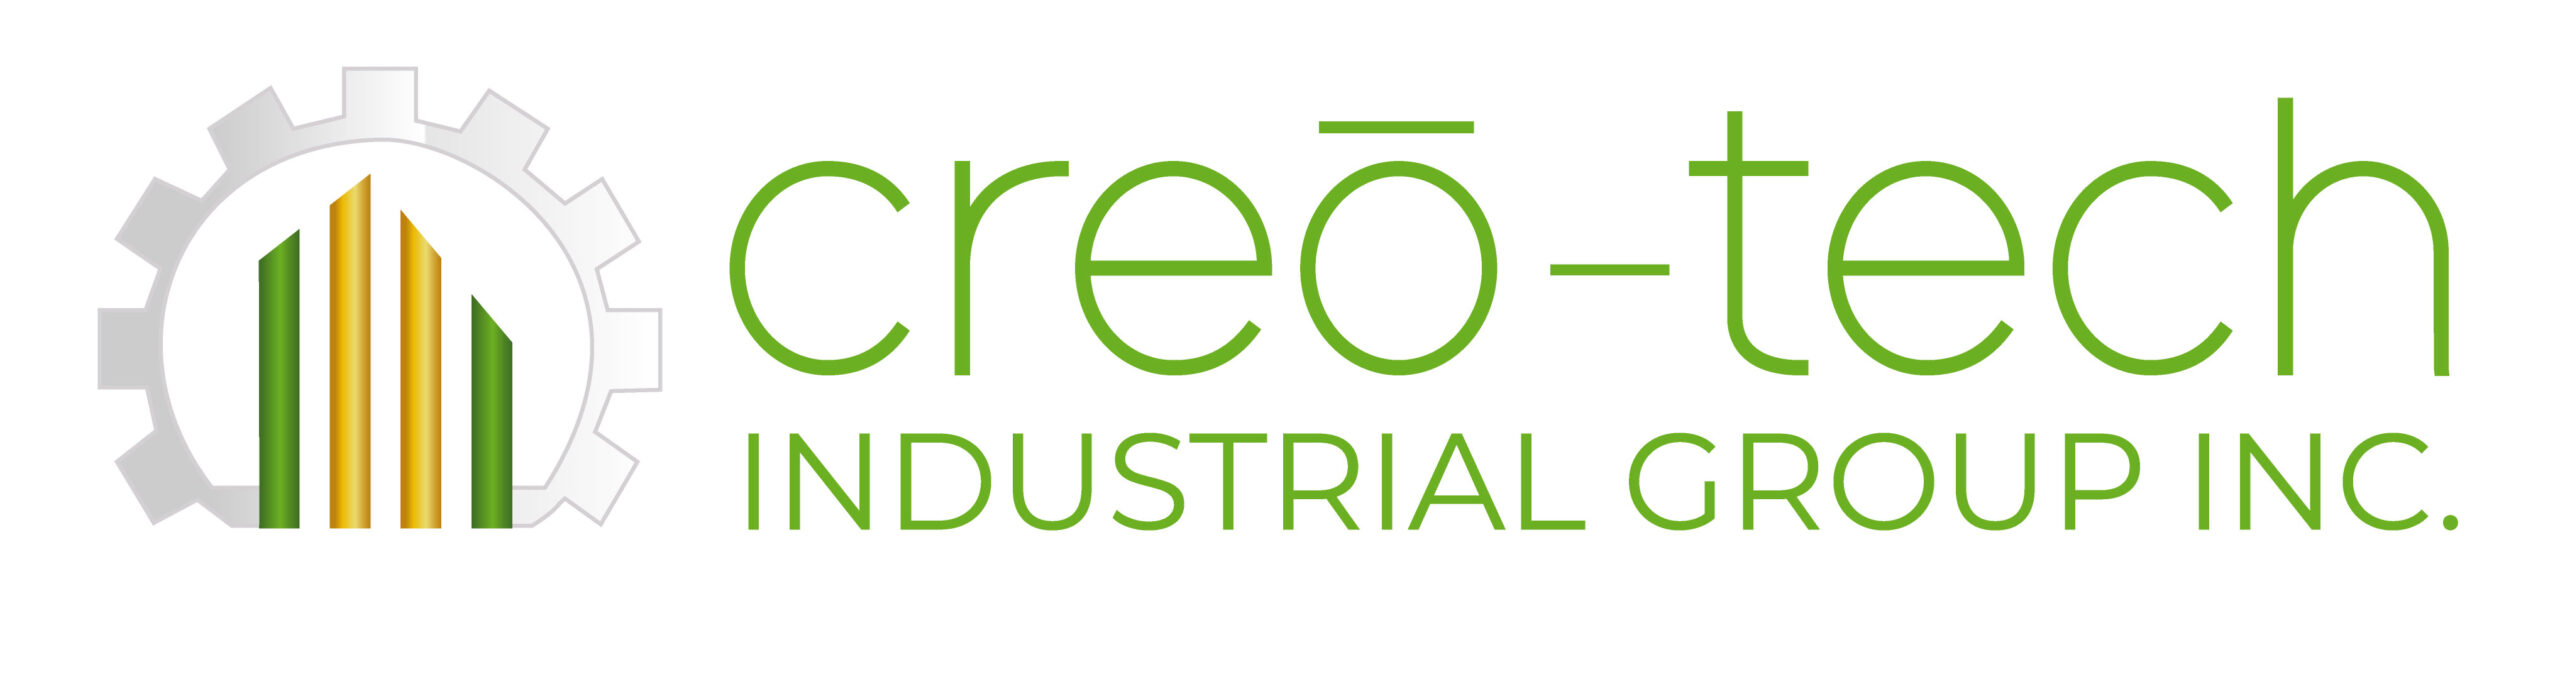 Creo-Tech Industrial Group